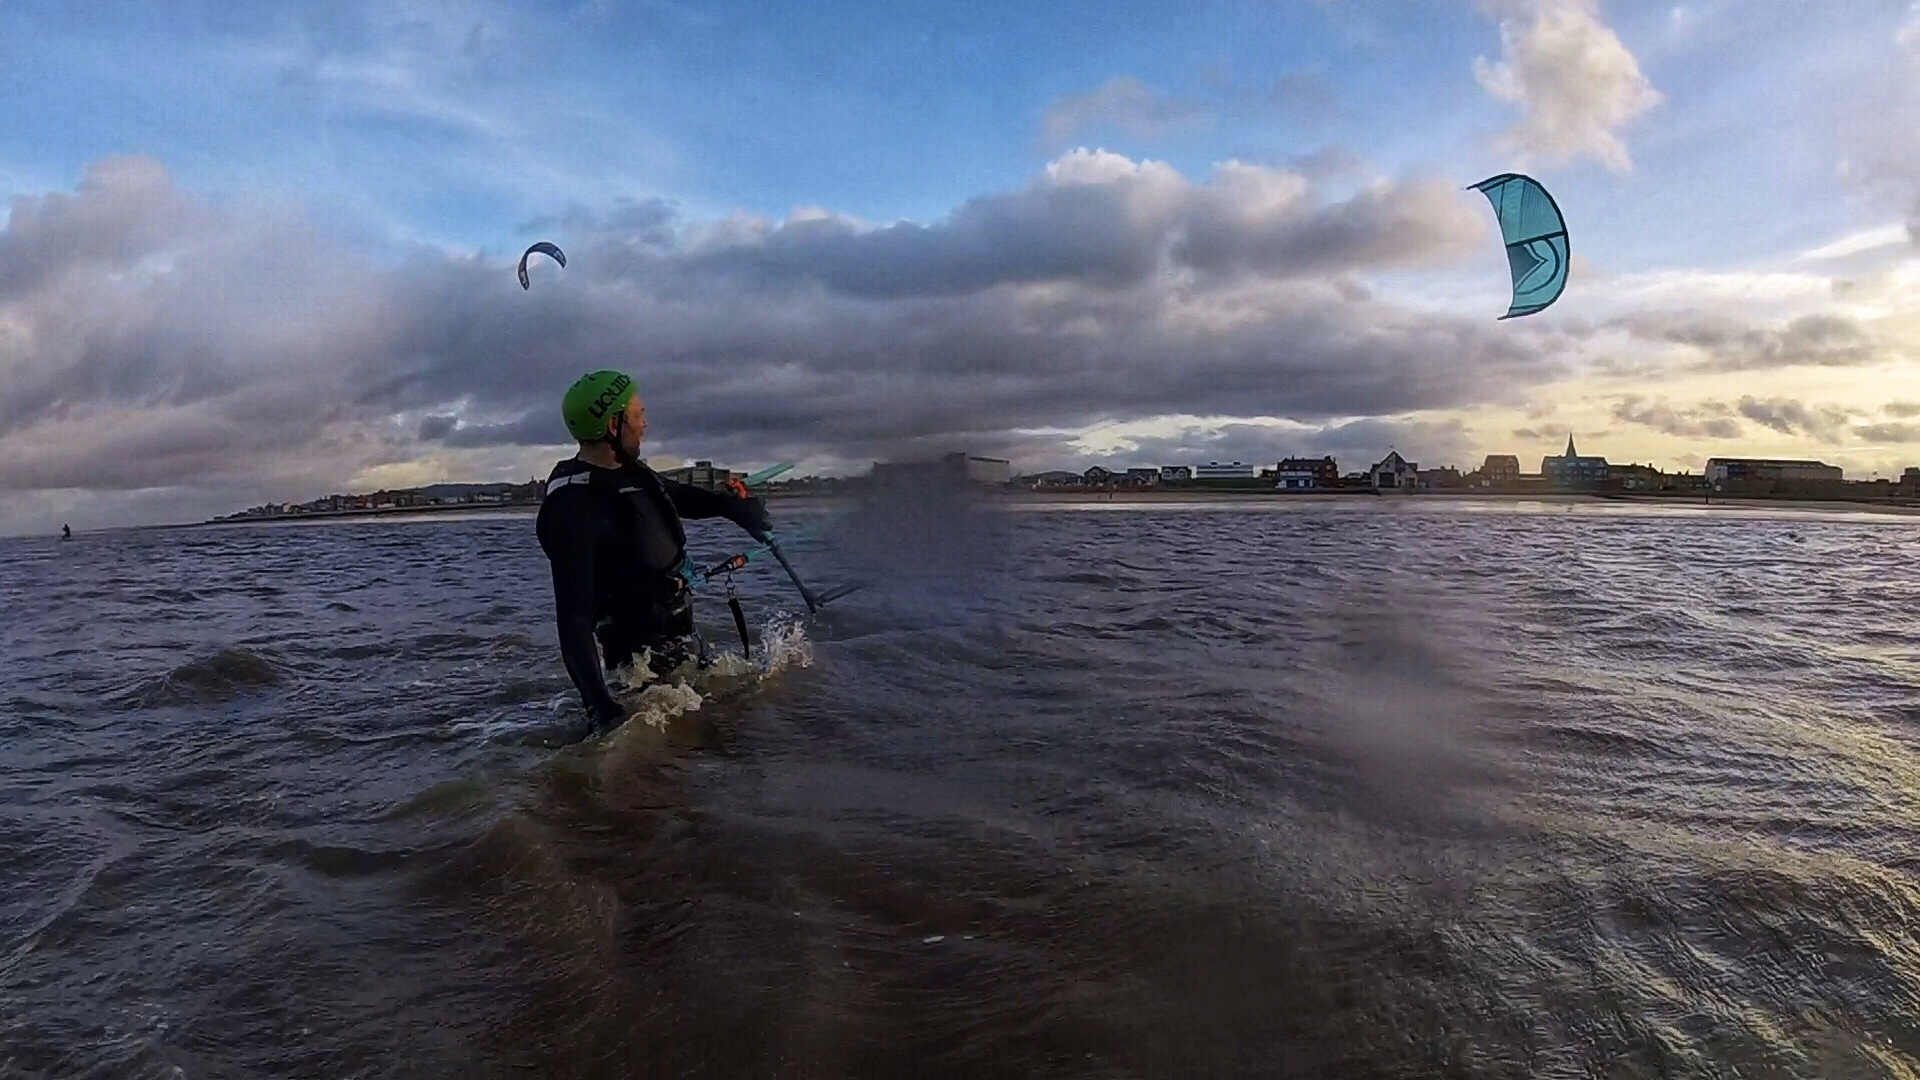 Kitesurfing in North East Wales